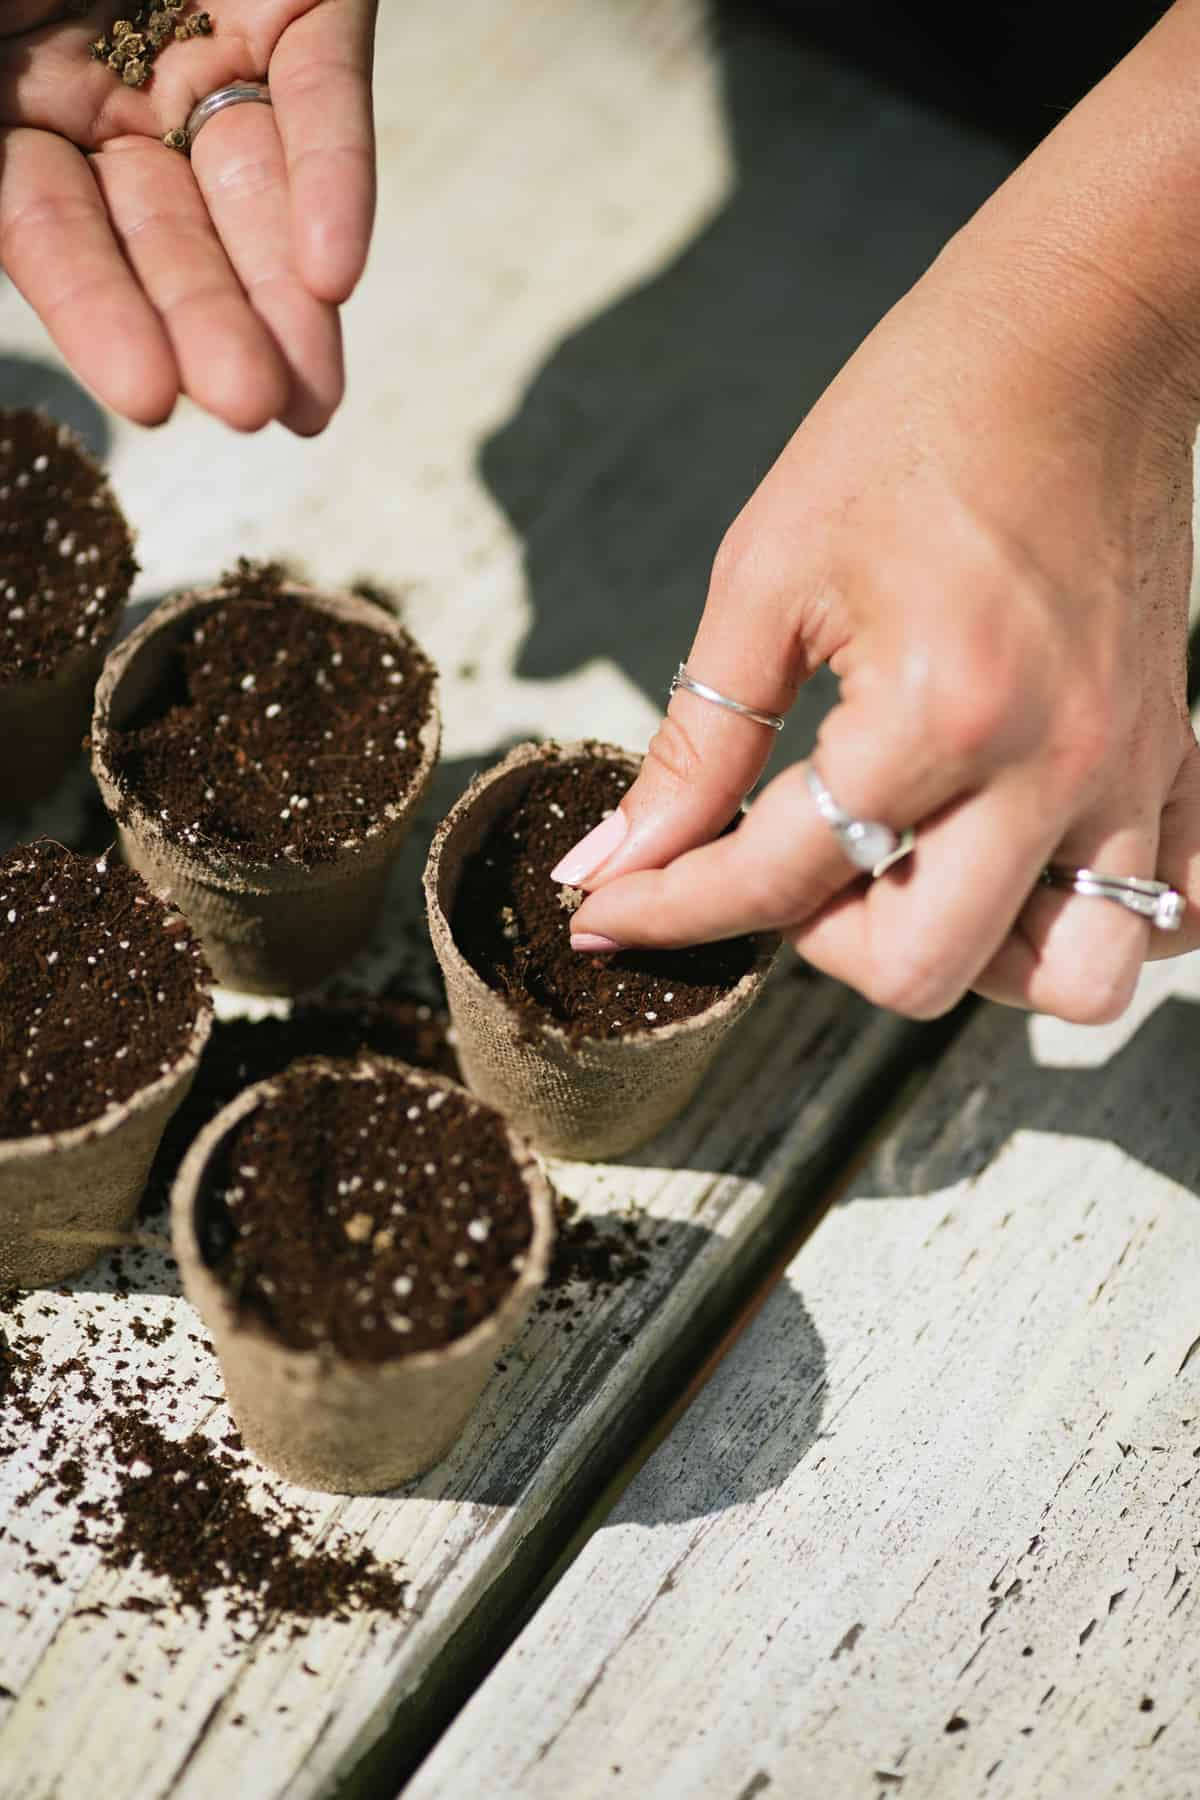 Hands putting seeds into peat pots filled with seed starting medium